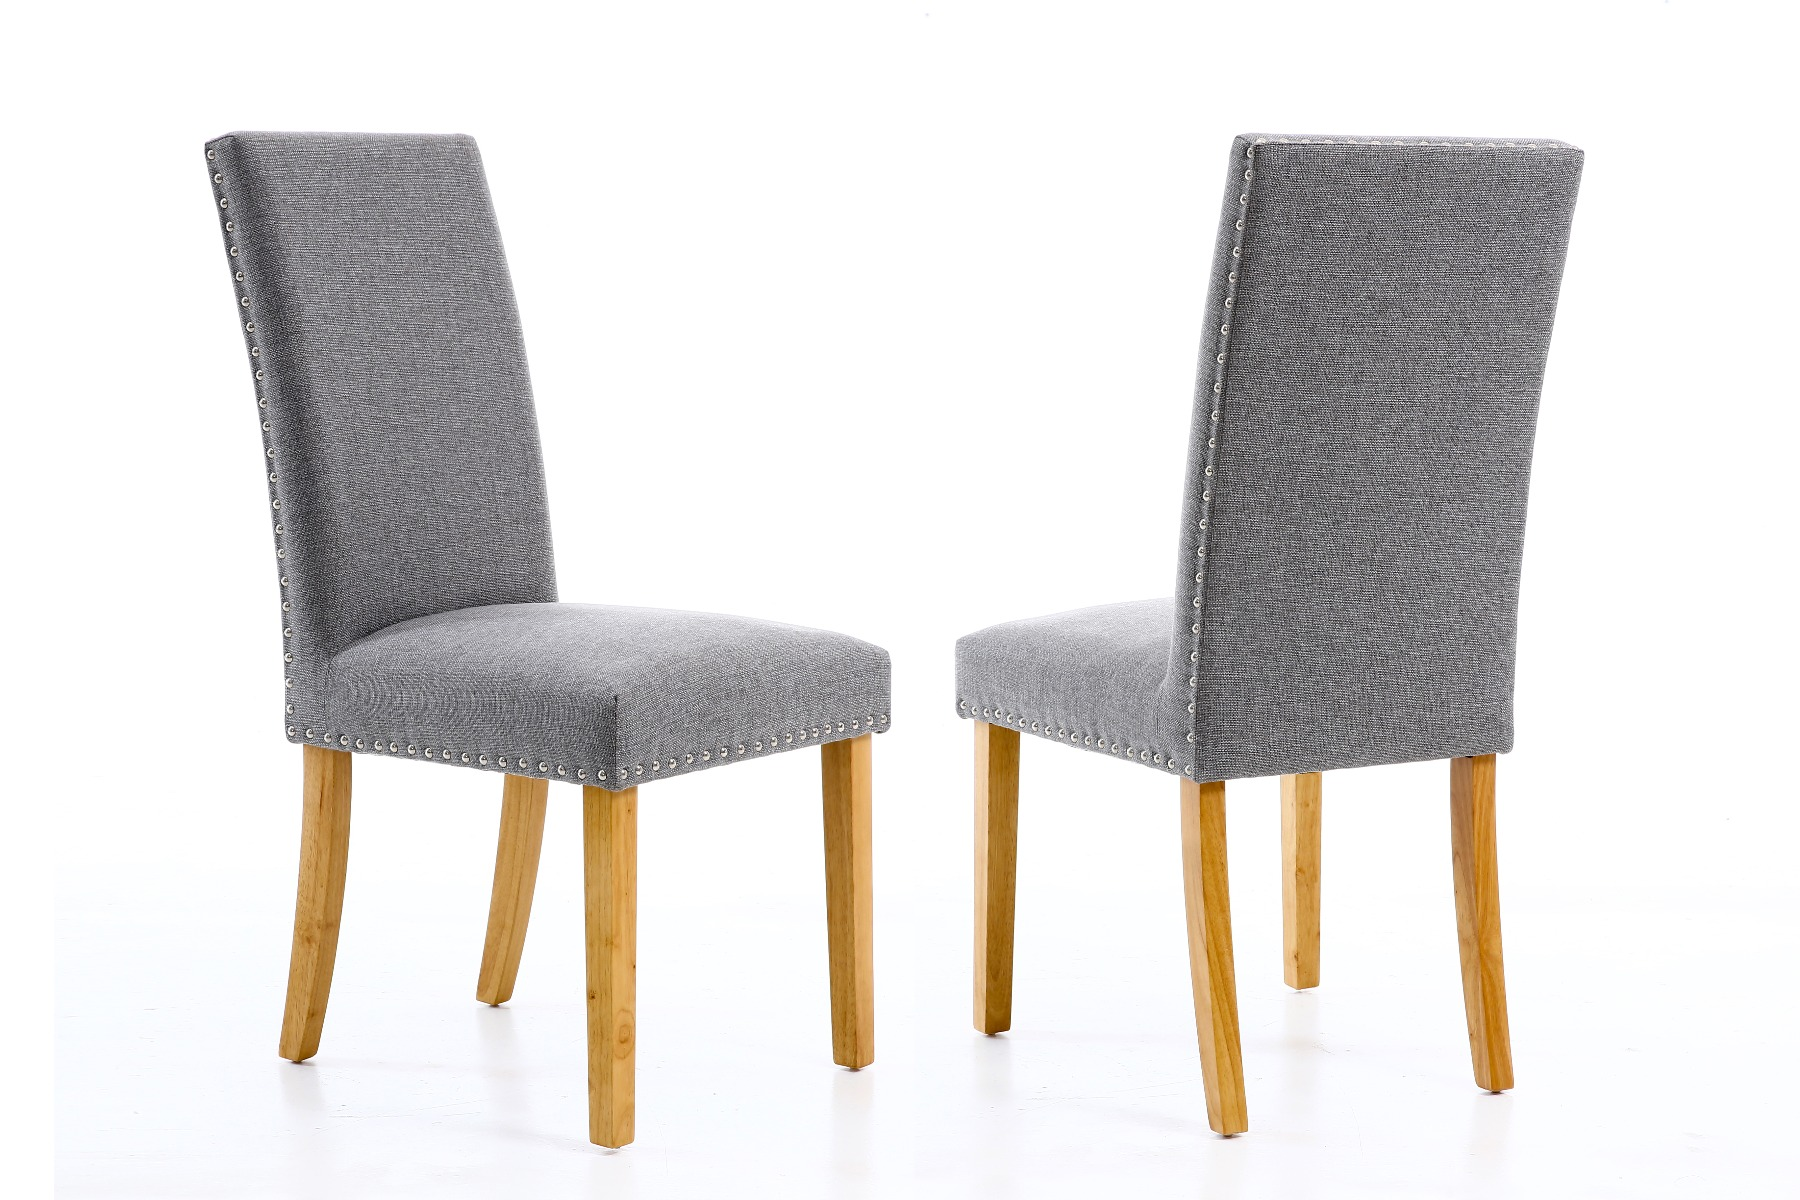 Studded Dining Chairs Mayfair Silver Grey Fabric Studded Dining Chair Spring Sale